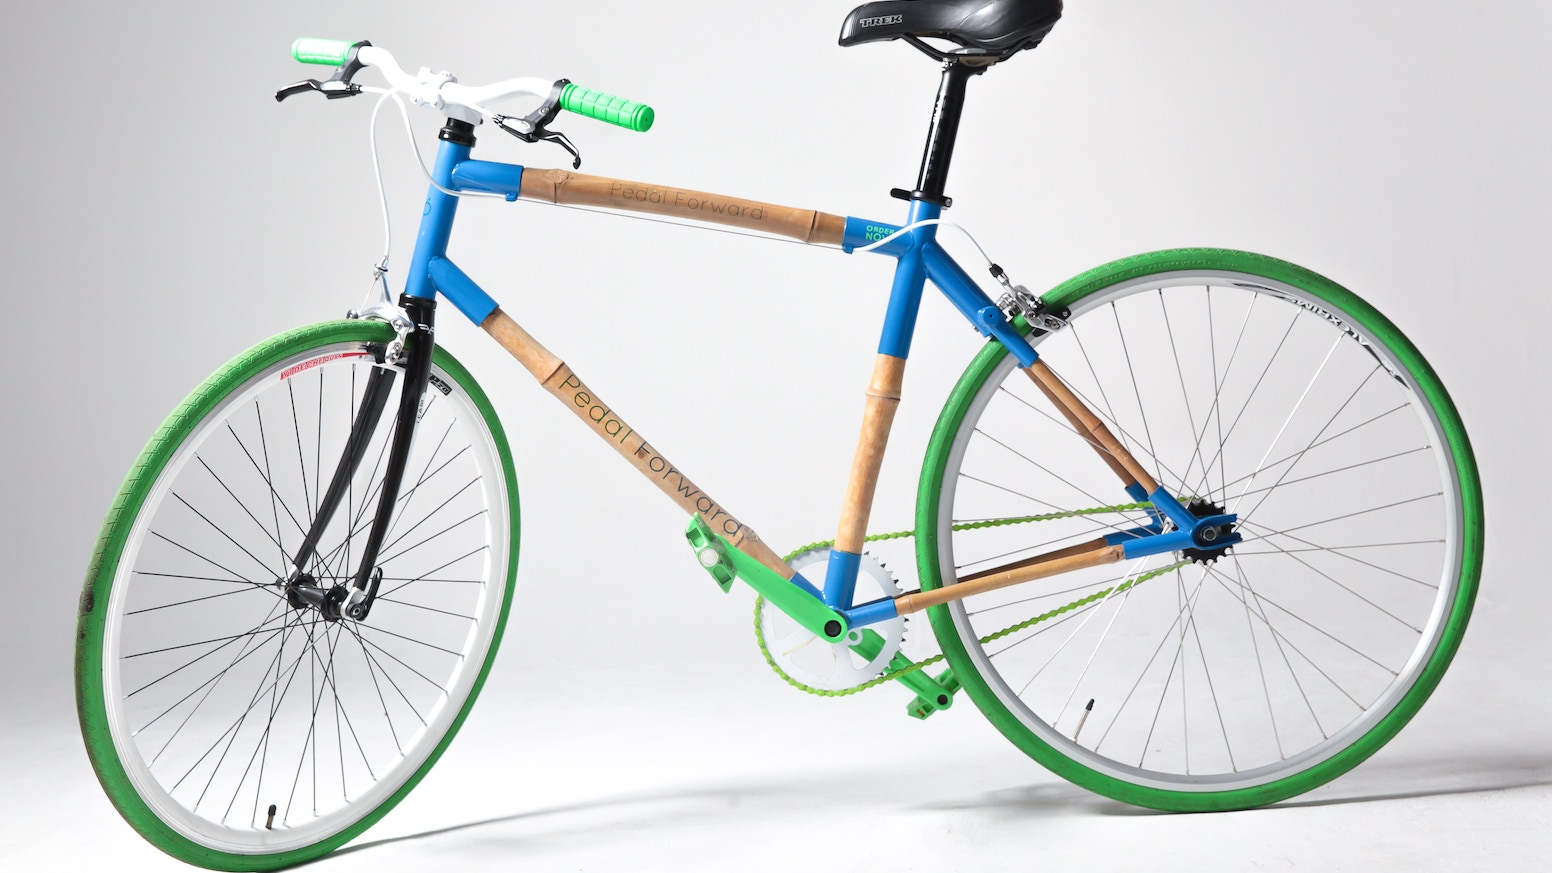 Pedal Forward: Bamboo Bicycles for All by Pedal Forward — Kickstarter